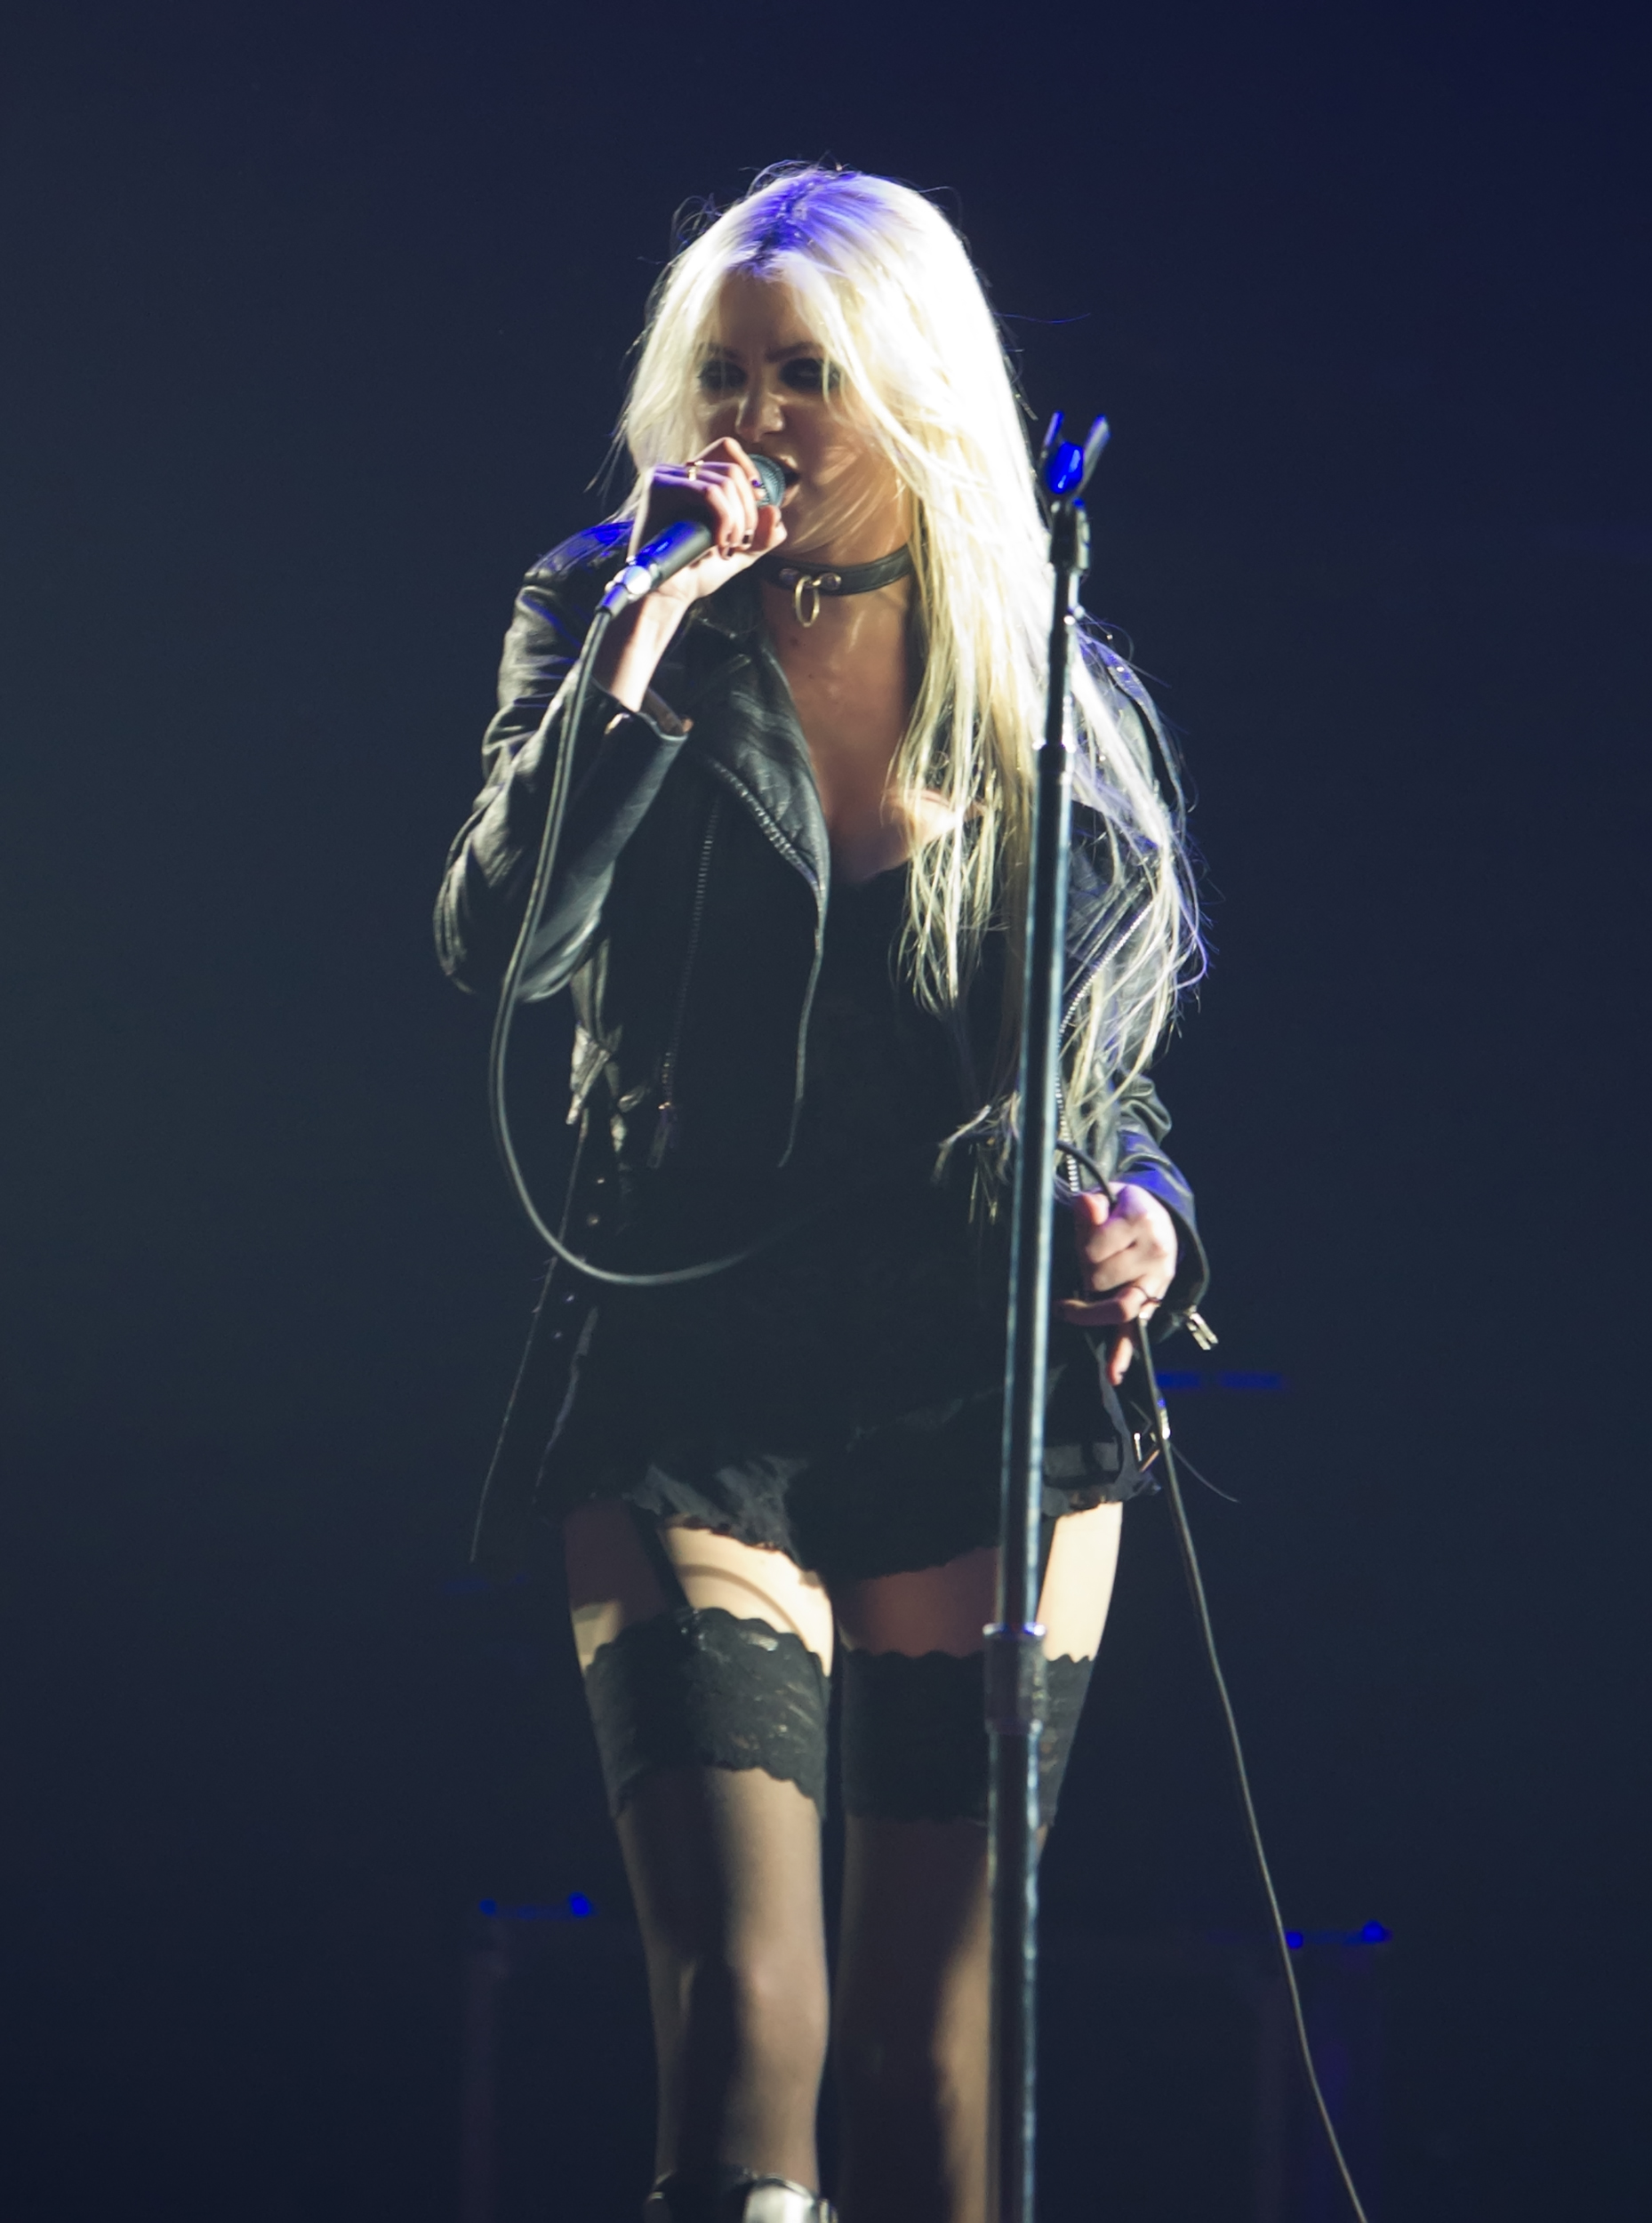 Taylor Momsen 2011 : Taylor Momsen performing at the Guns N Roses concert in New Jersey-04